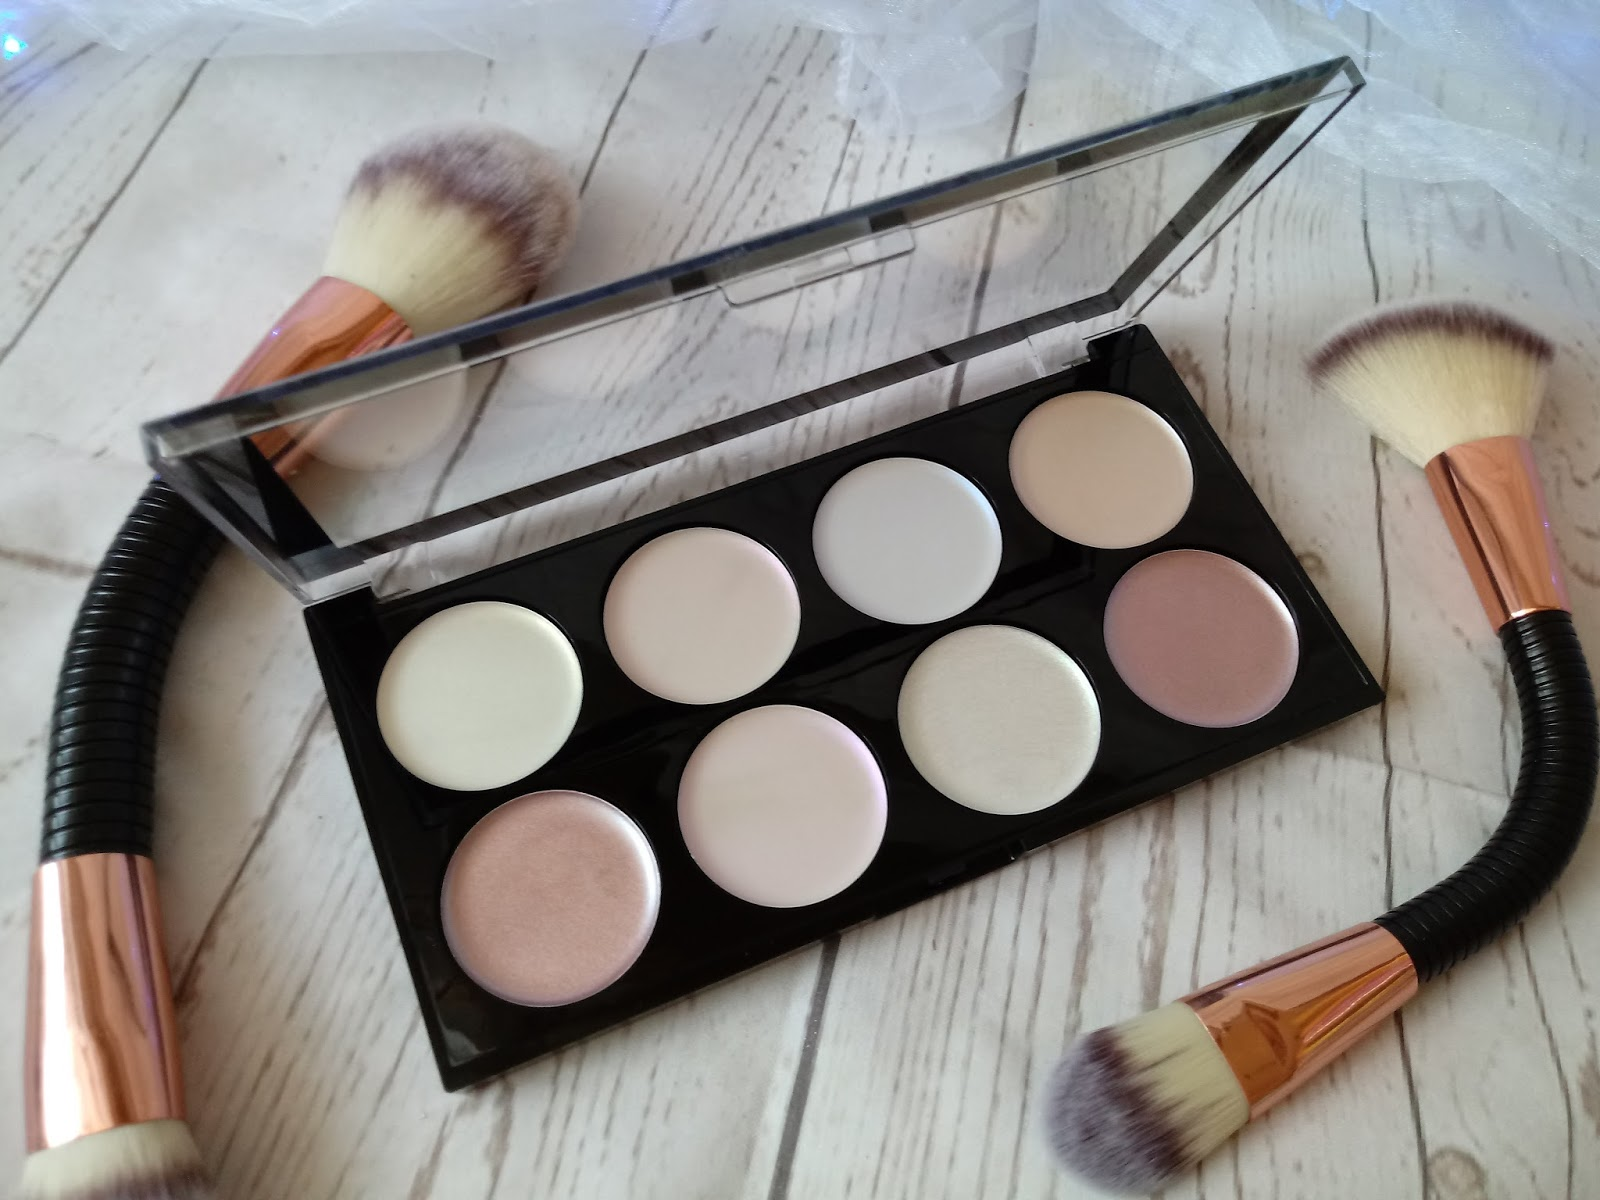 ULTRA STROBE AND LIGHT PALETTE & ULTRA STROBE BALM PALETTE / MAKEUP REVOLUTION / RECENZJA